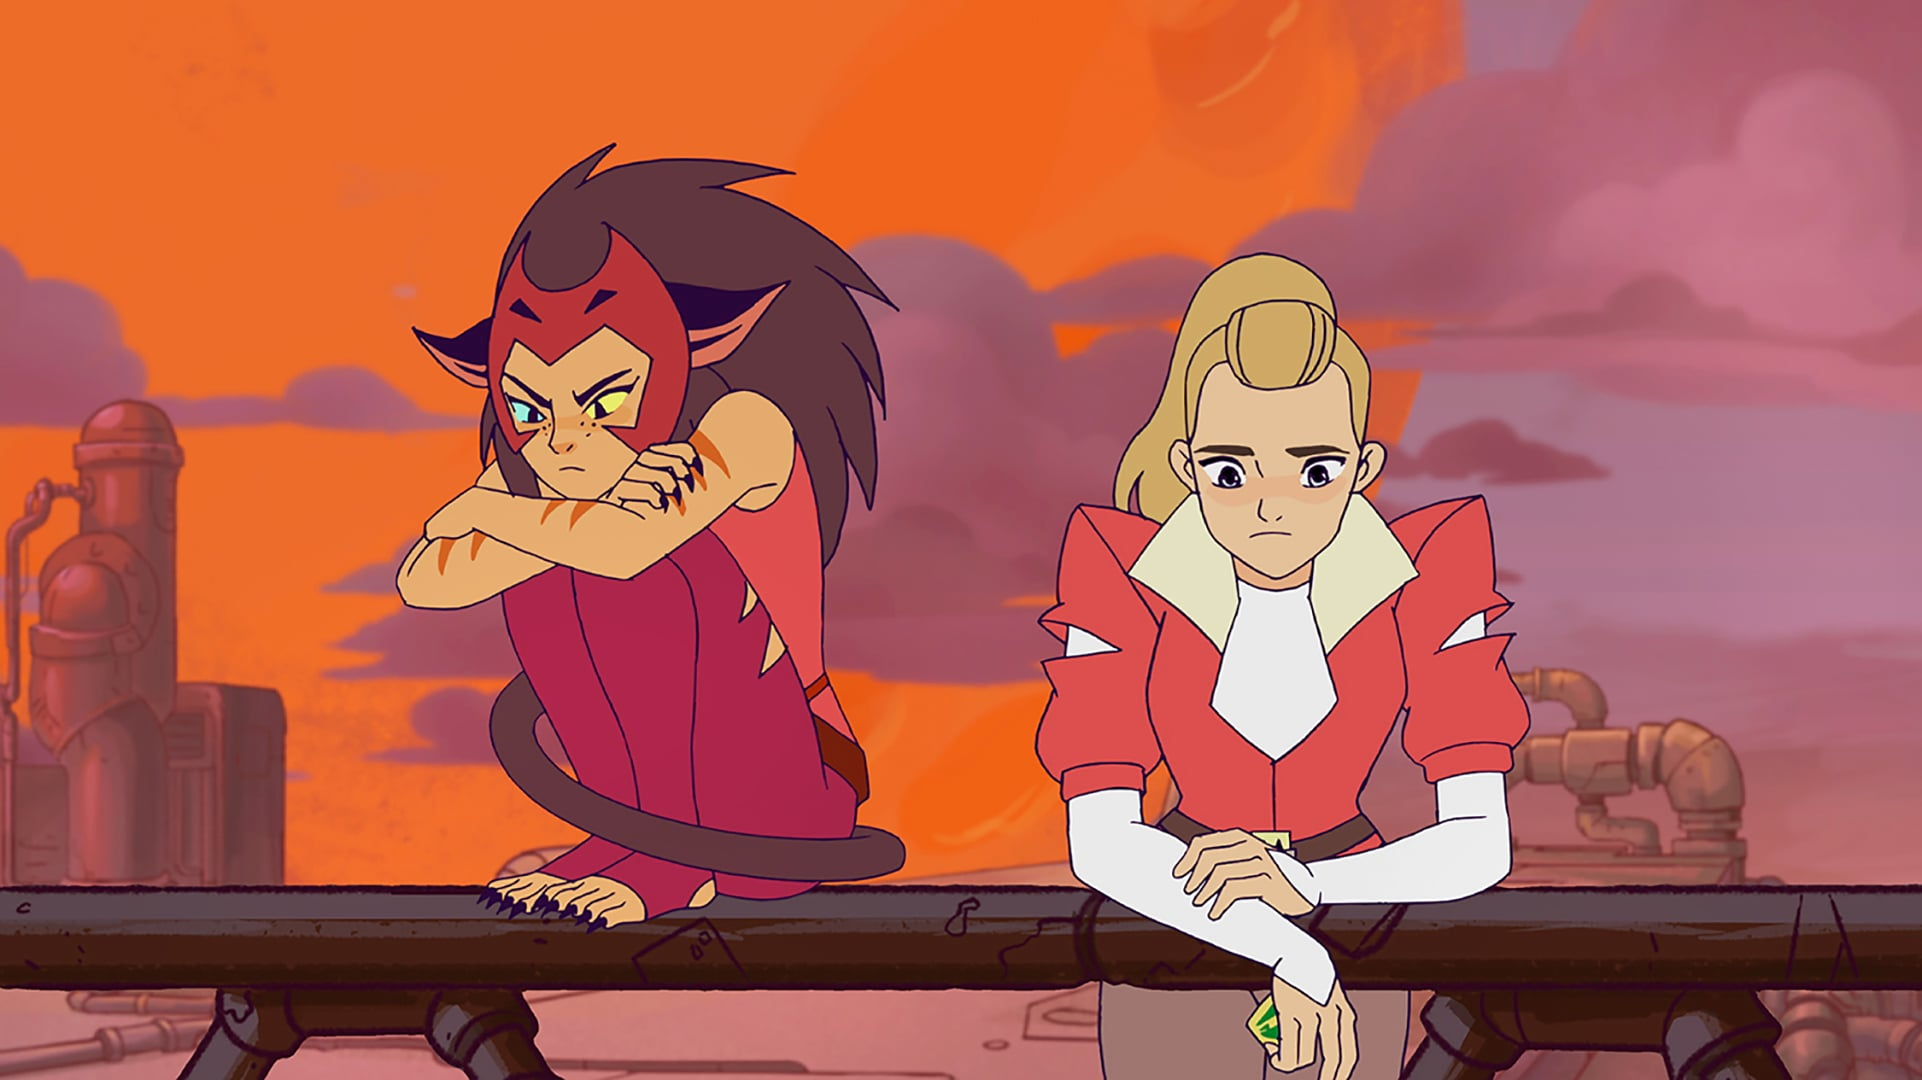 SHE-RA AND THE PRINCESSES OF POWER, from left: Catra (voiced by AJ Michalka), Adora, (Season 1, airs Nov. 16, 2018). photo: Netflix / Courtesy: Everett Collection